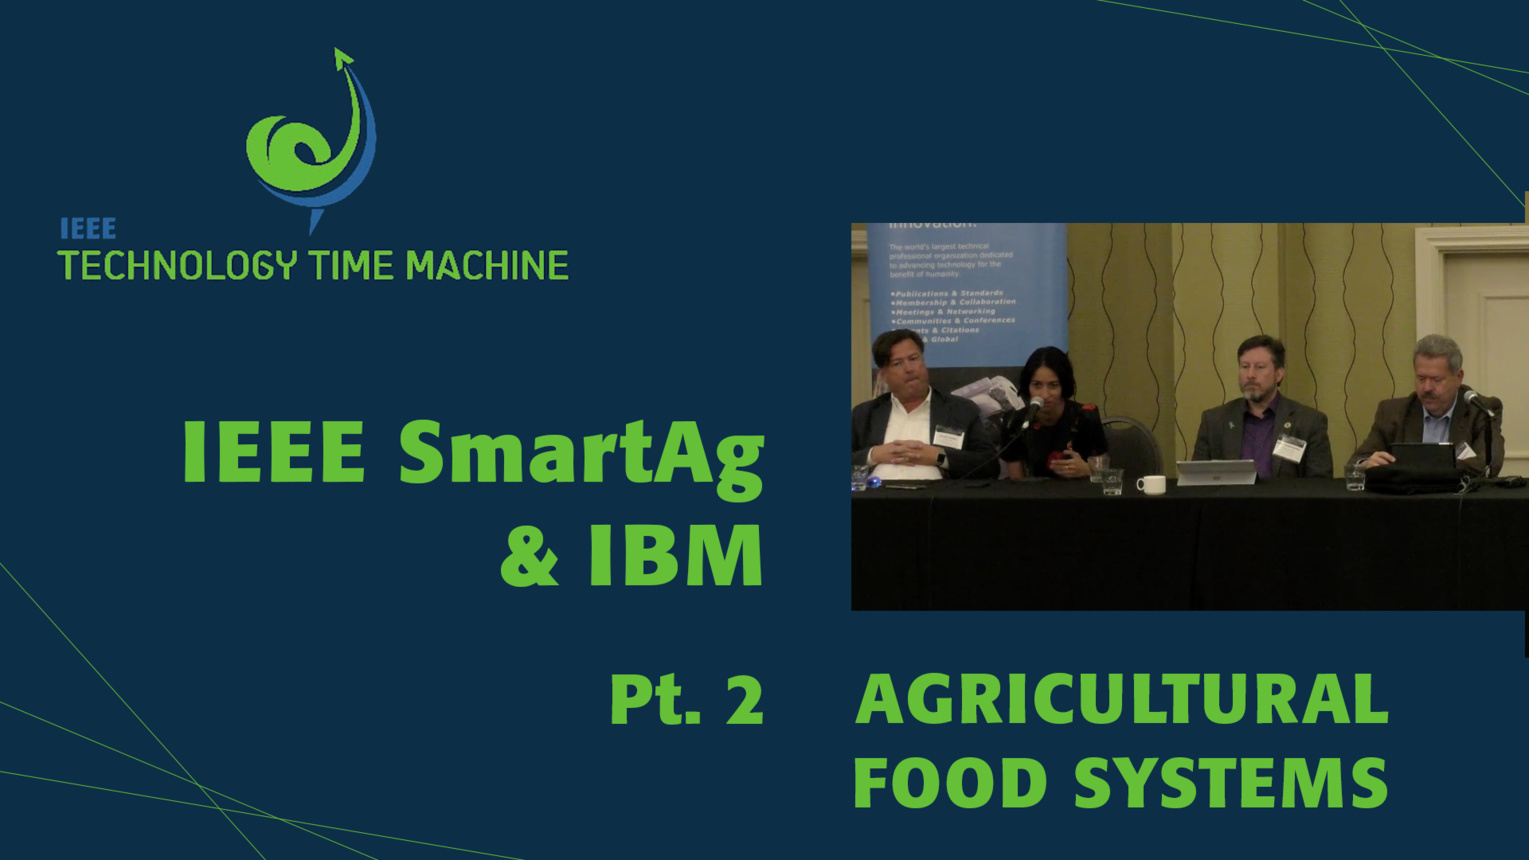 Part 2: John Verboncouer and Bernie Meyerson - Agricultural Food Systems Panel - TTM 2018